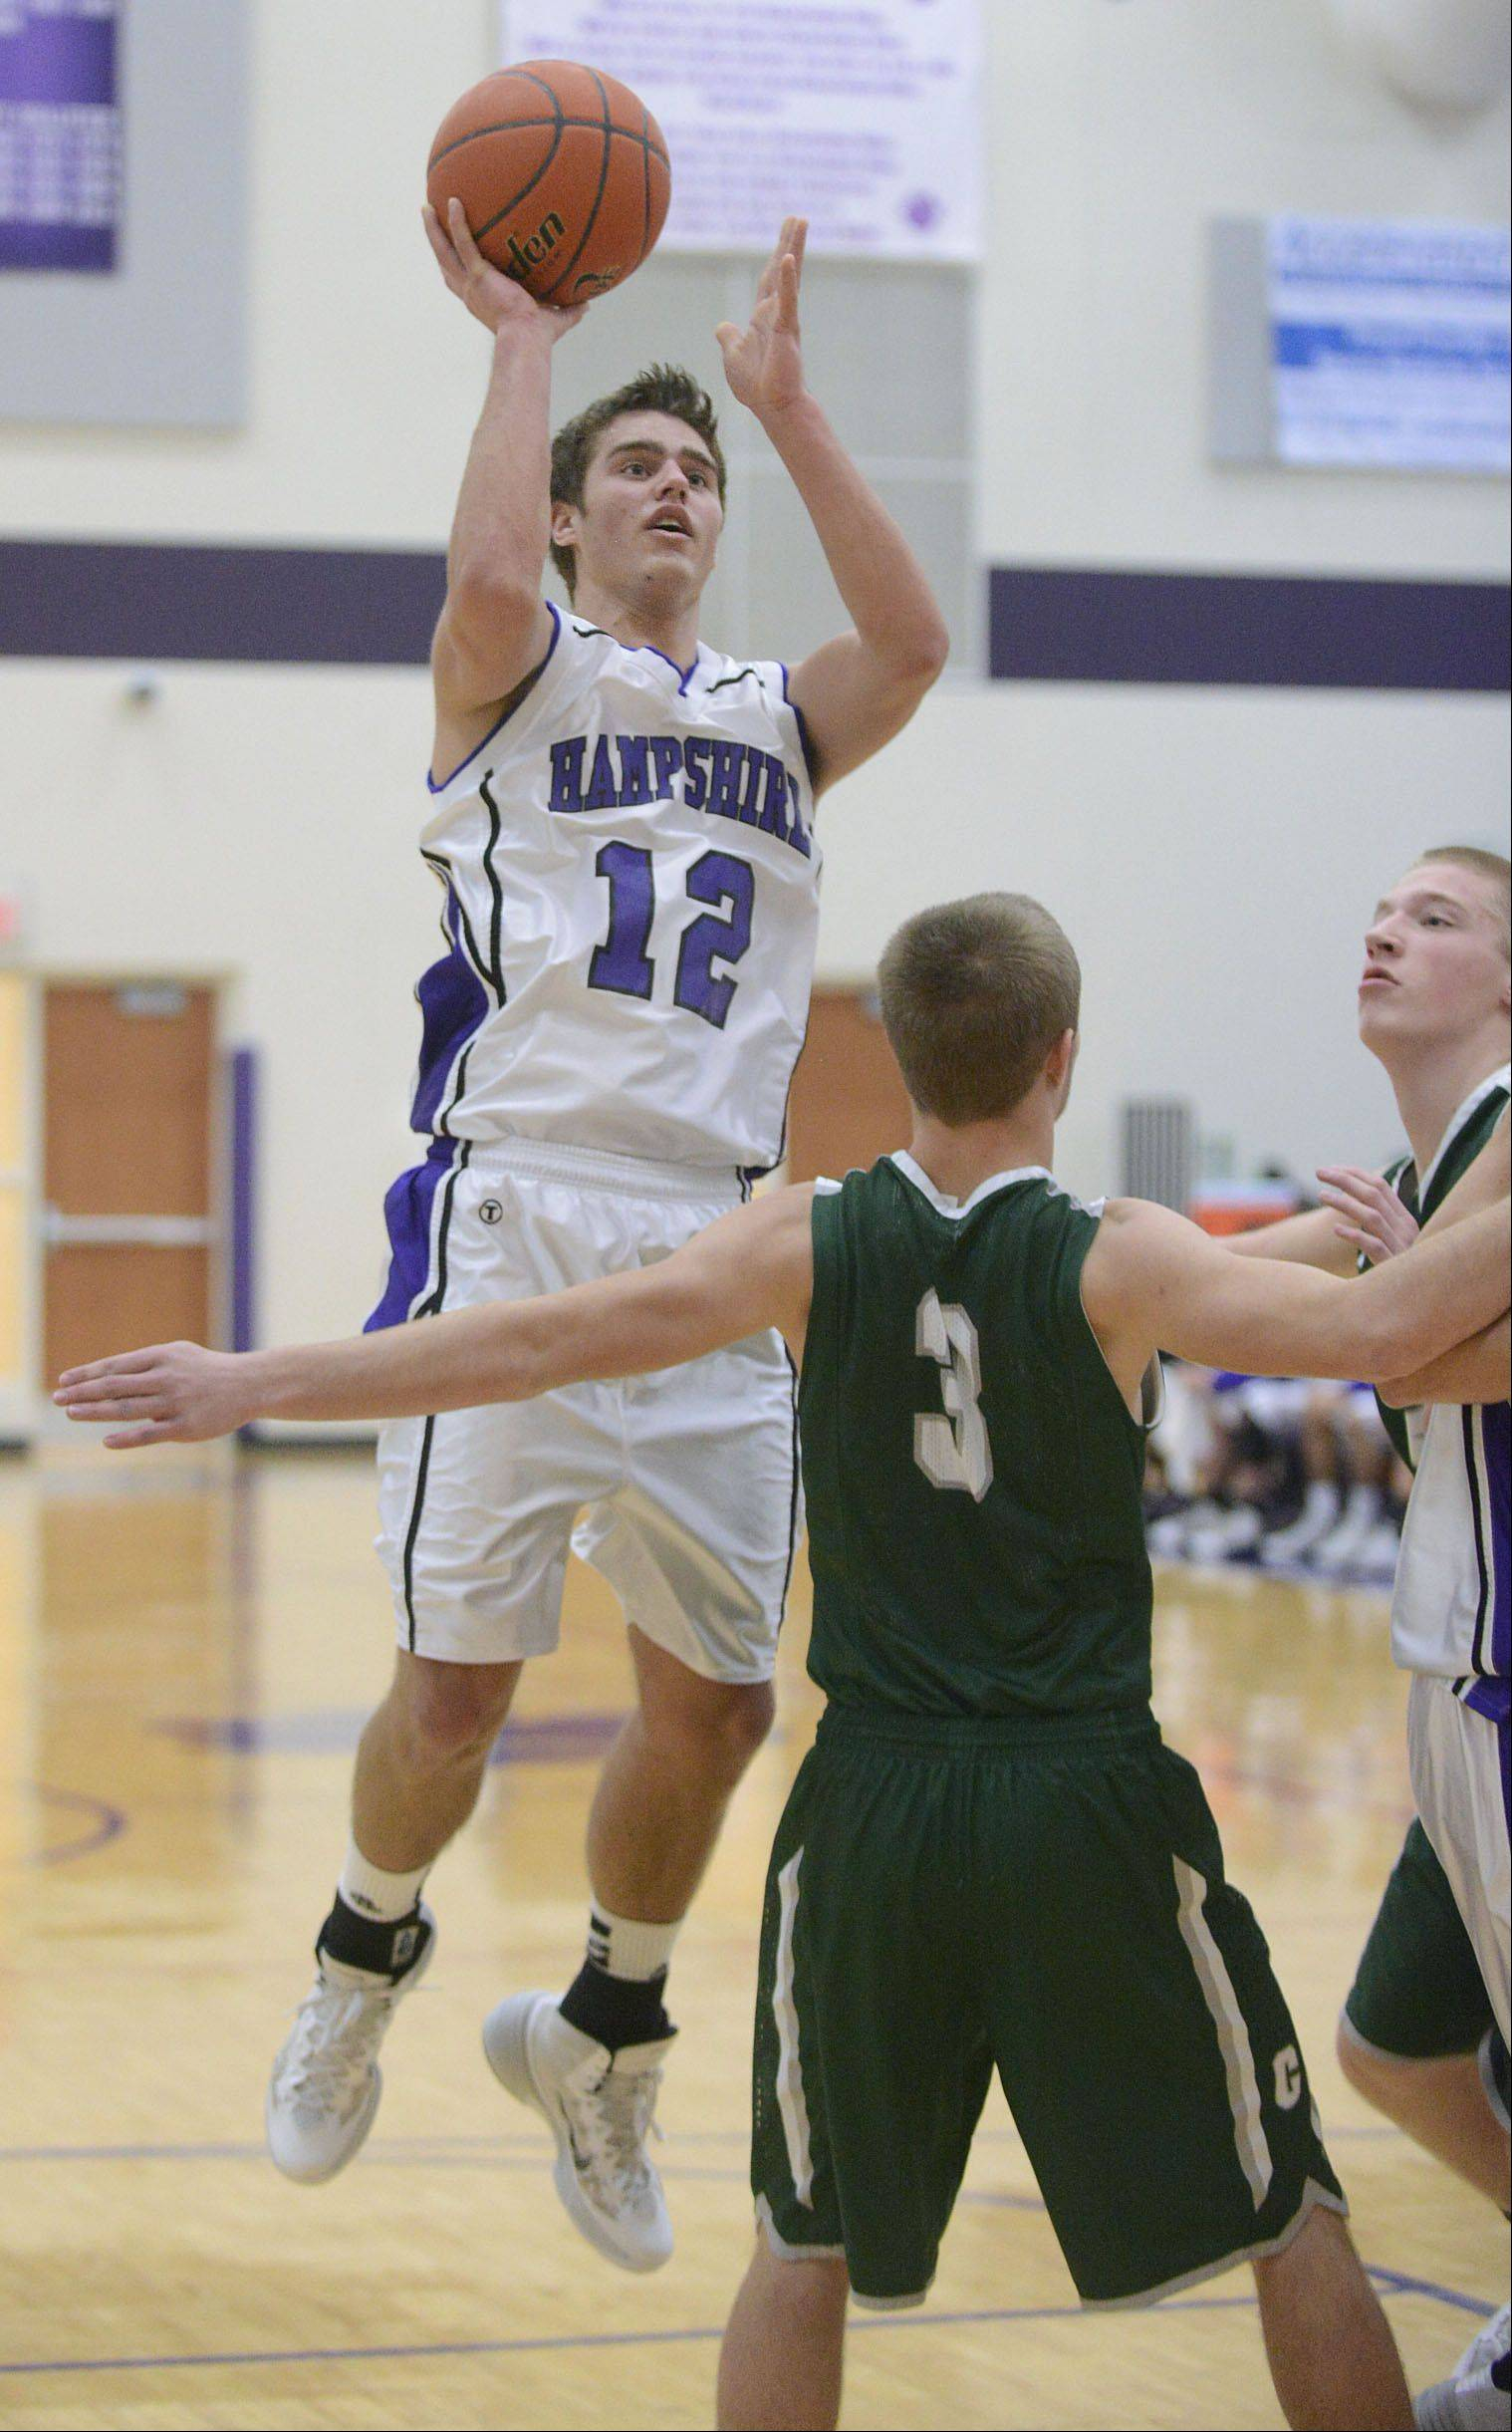 Hampshire's Matthew Bridges shoots over Grayslake Central's Matt Loeffl in the first quarter on Saturday, January 4.